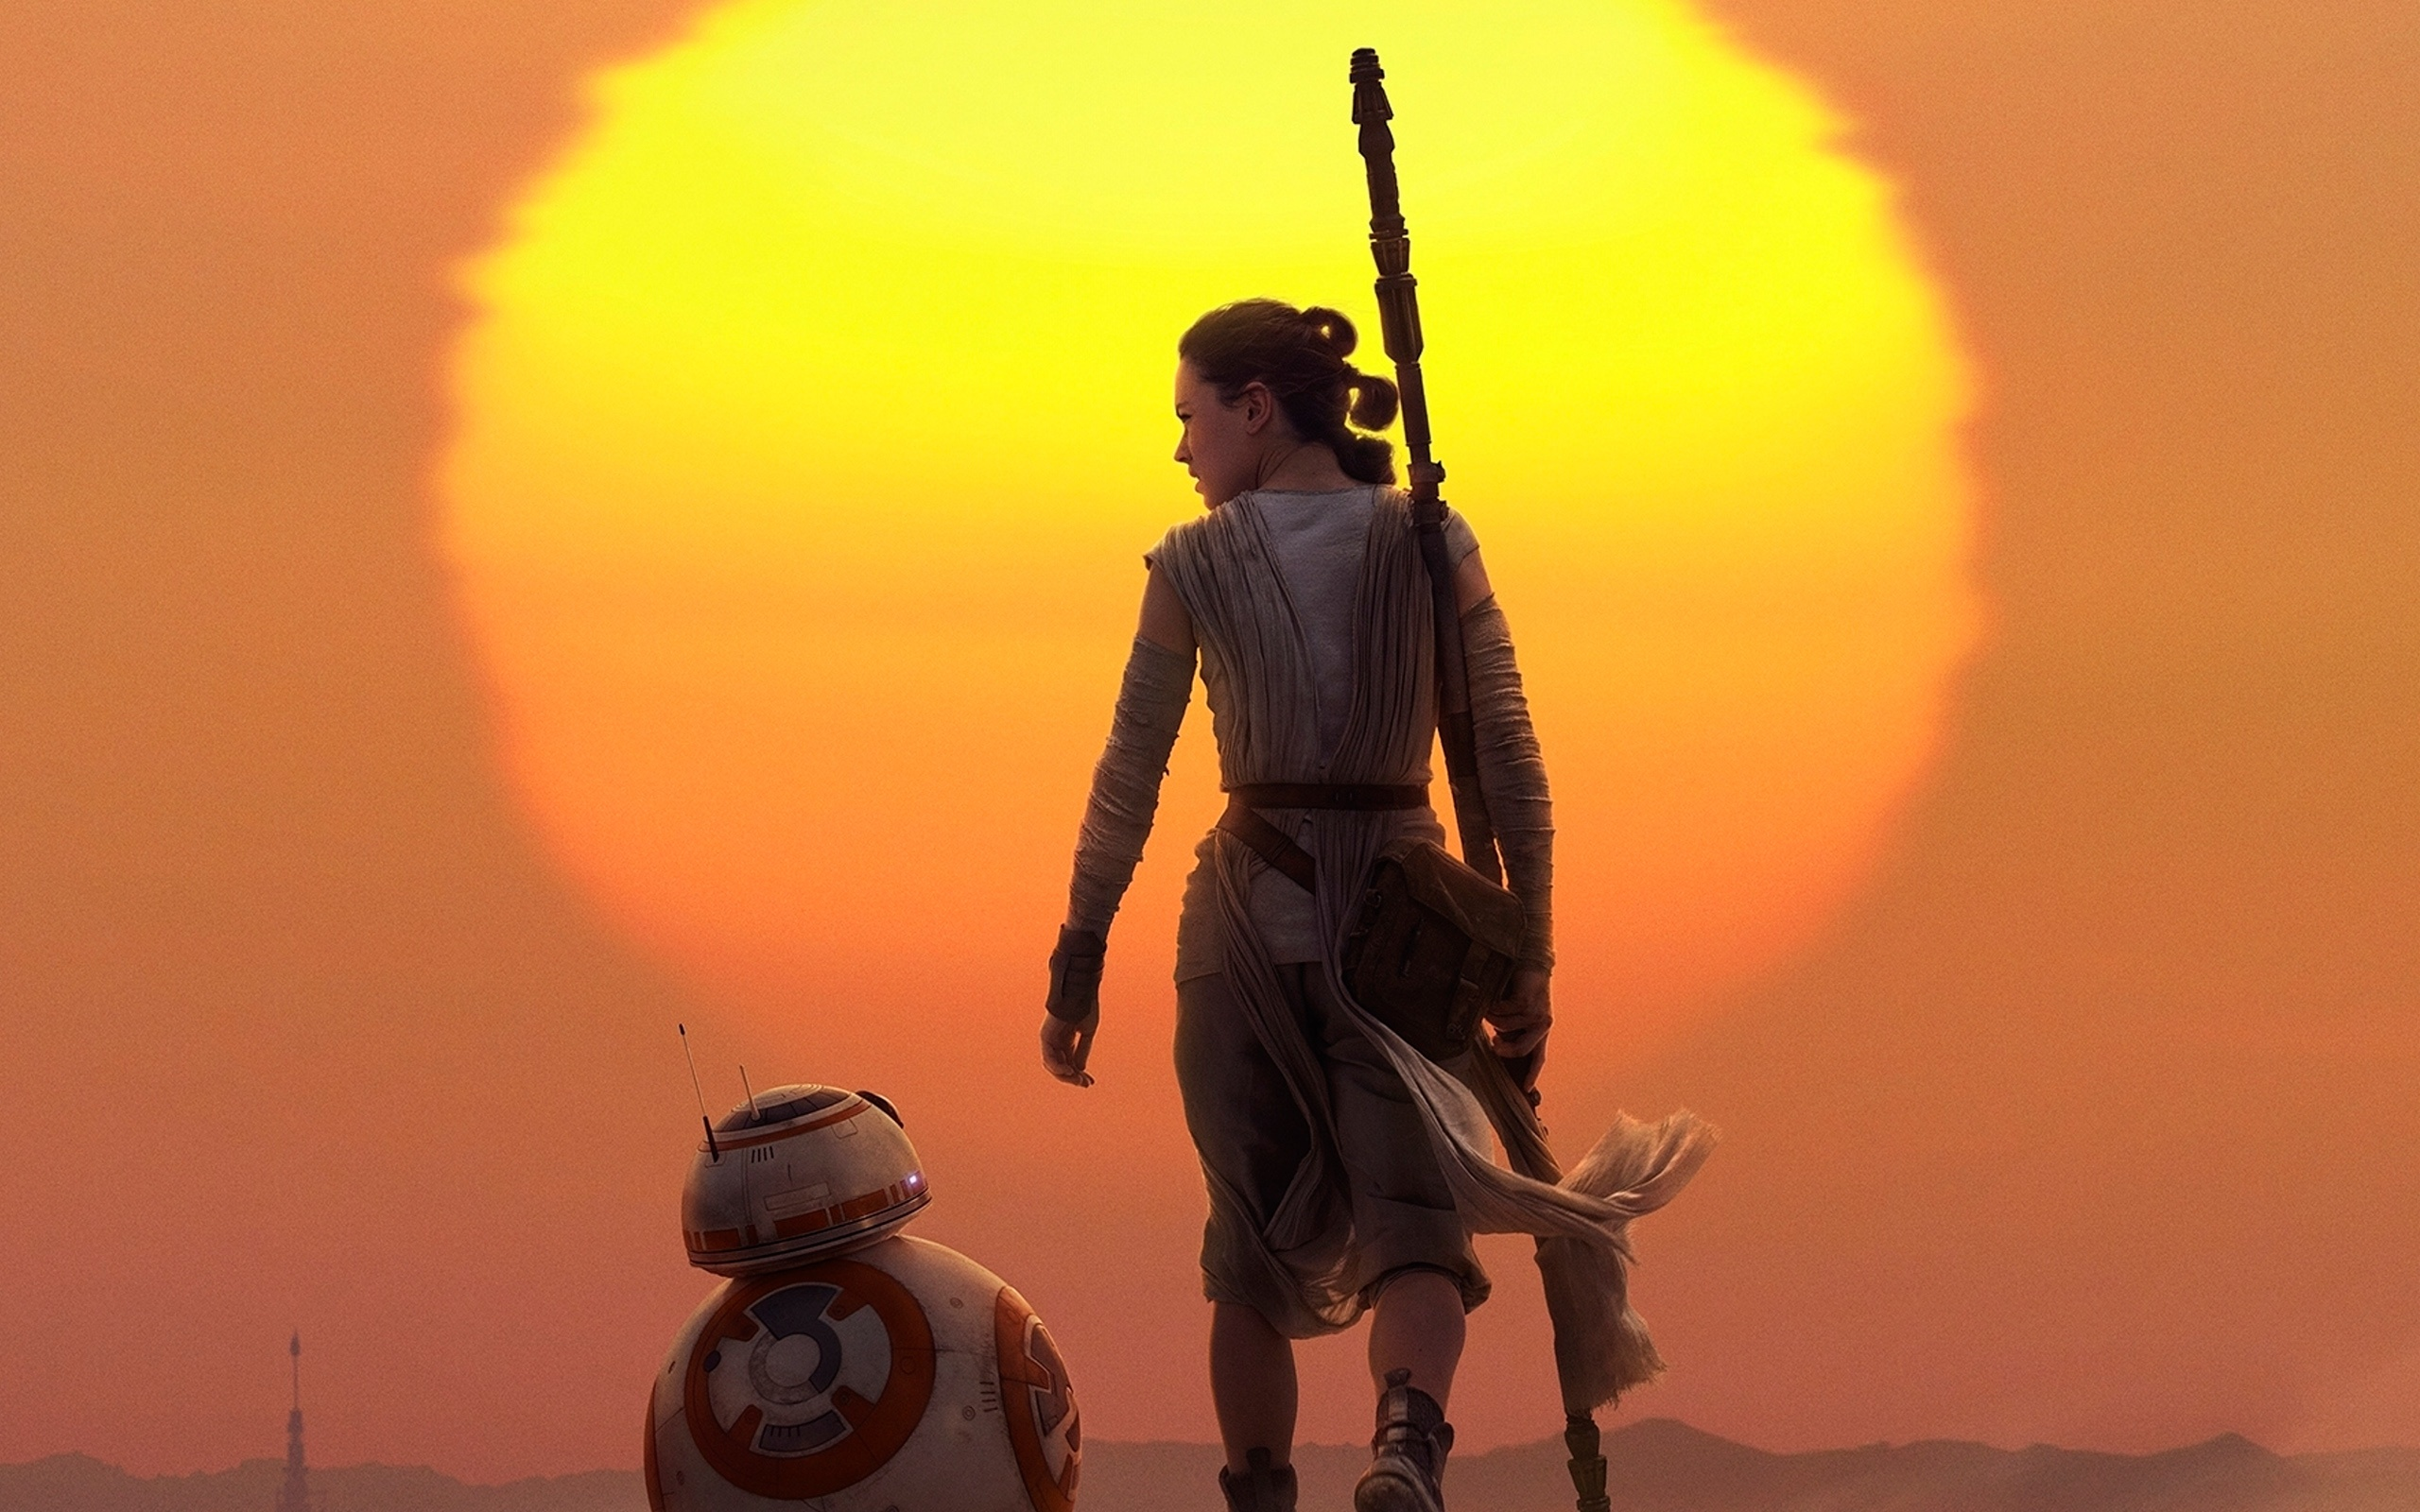 rey & bb 8 star wars the force awakens wallpapers in jpg format